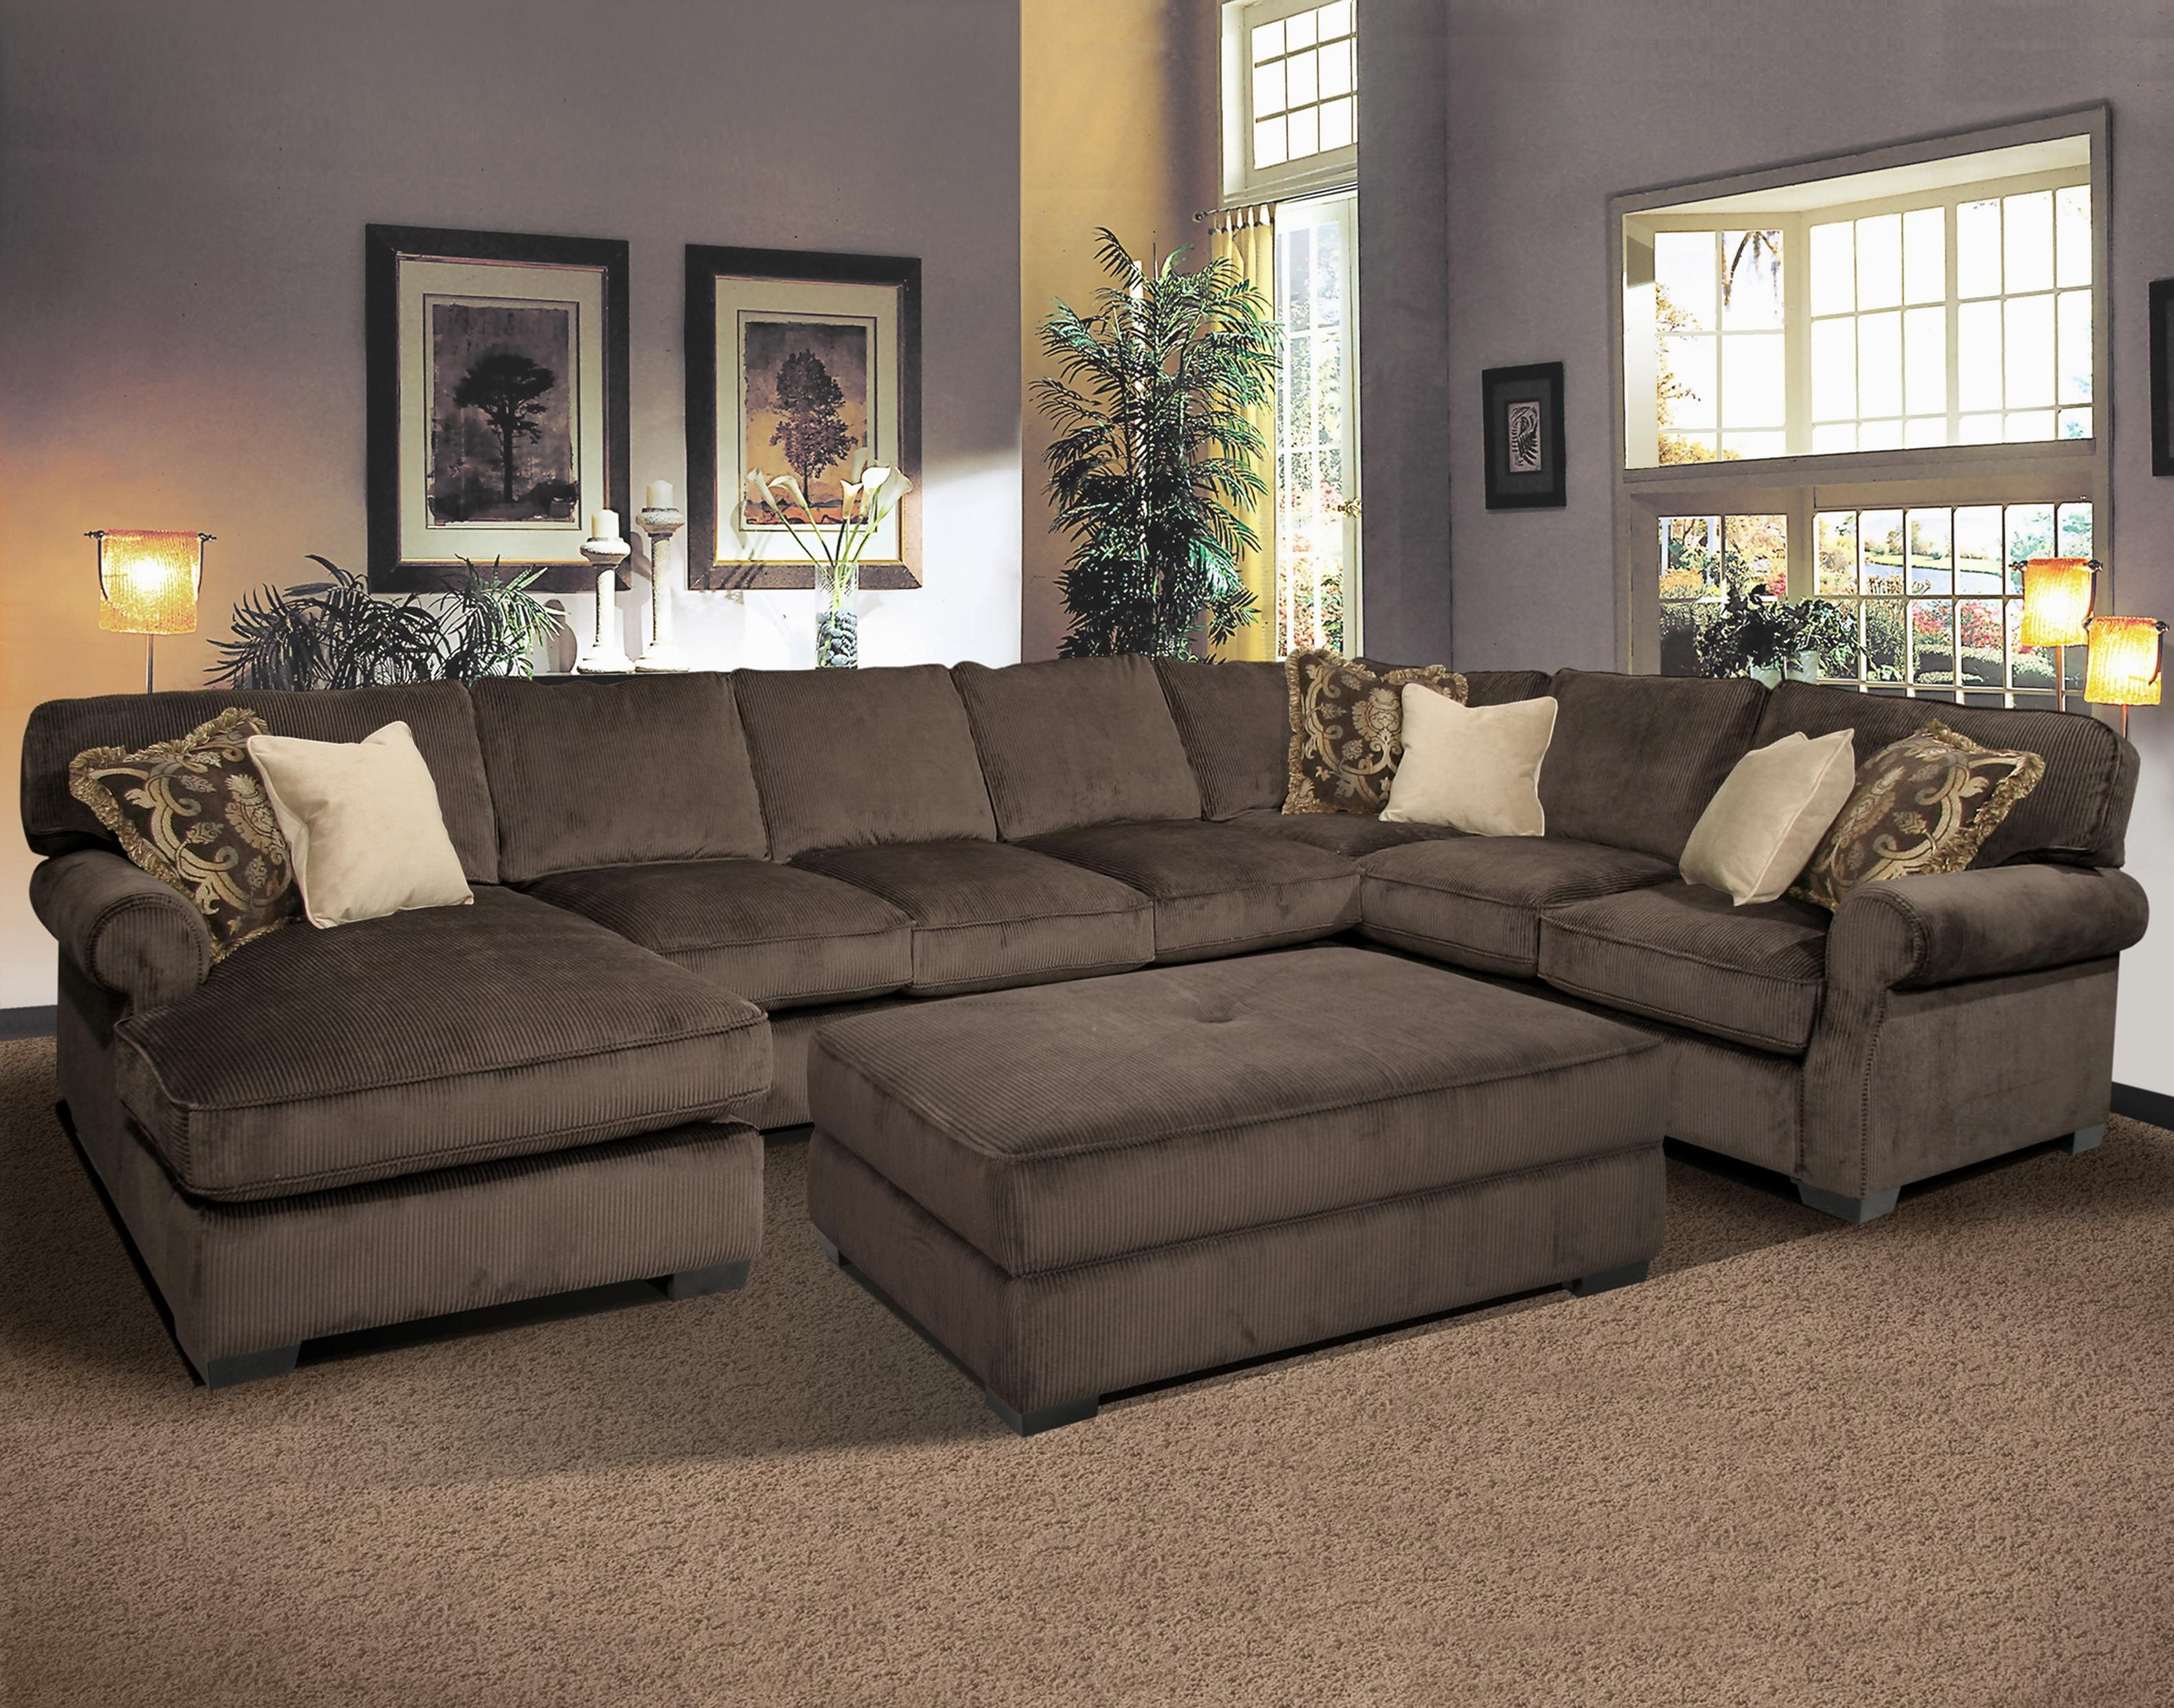 Preferred Furniture : Sectional Sofa With Recliner And Ottoman Grand Island Intended For Sectional Sofas With Oversized Ottoman (View 11 of 20)